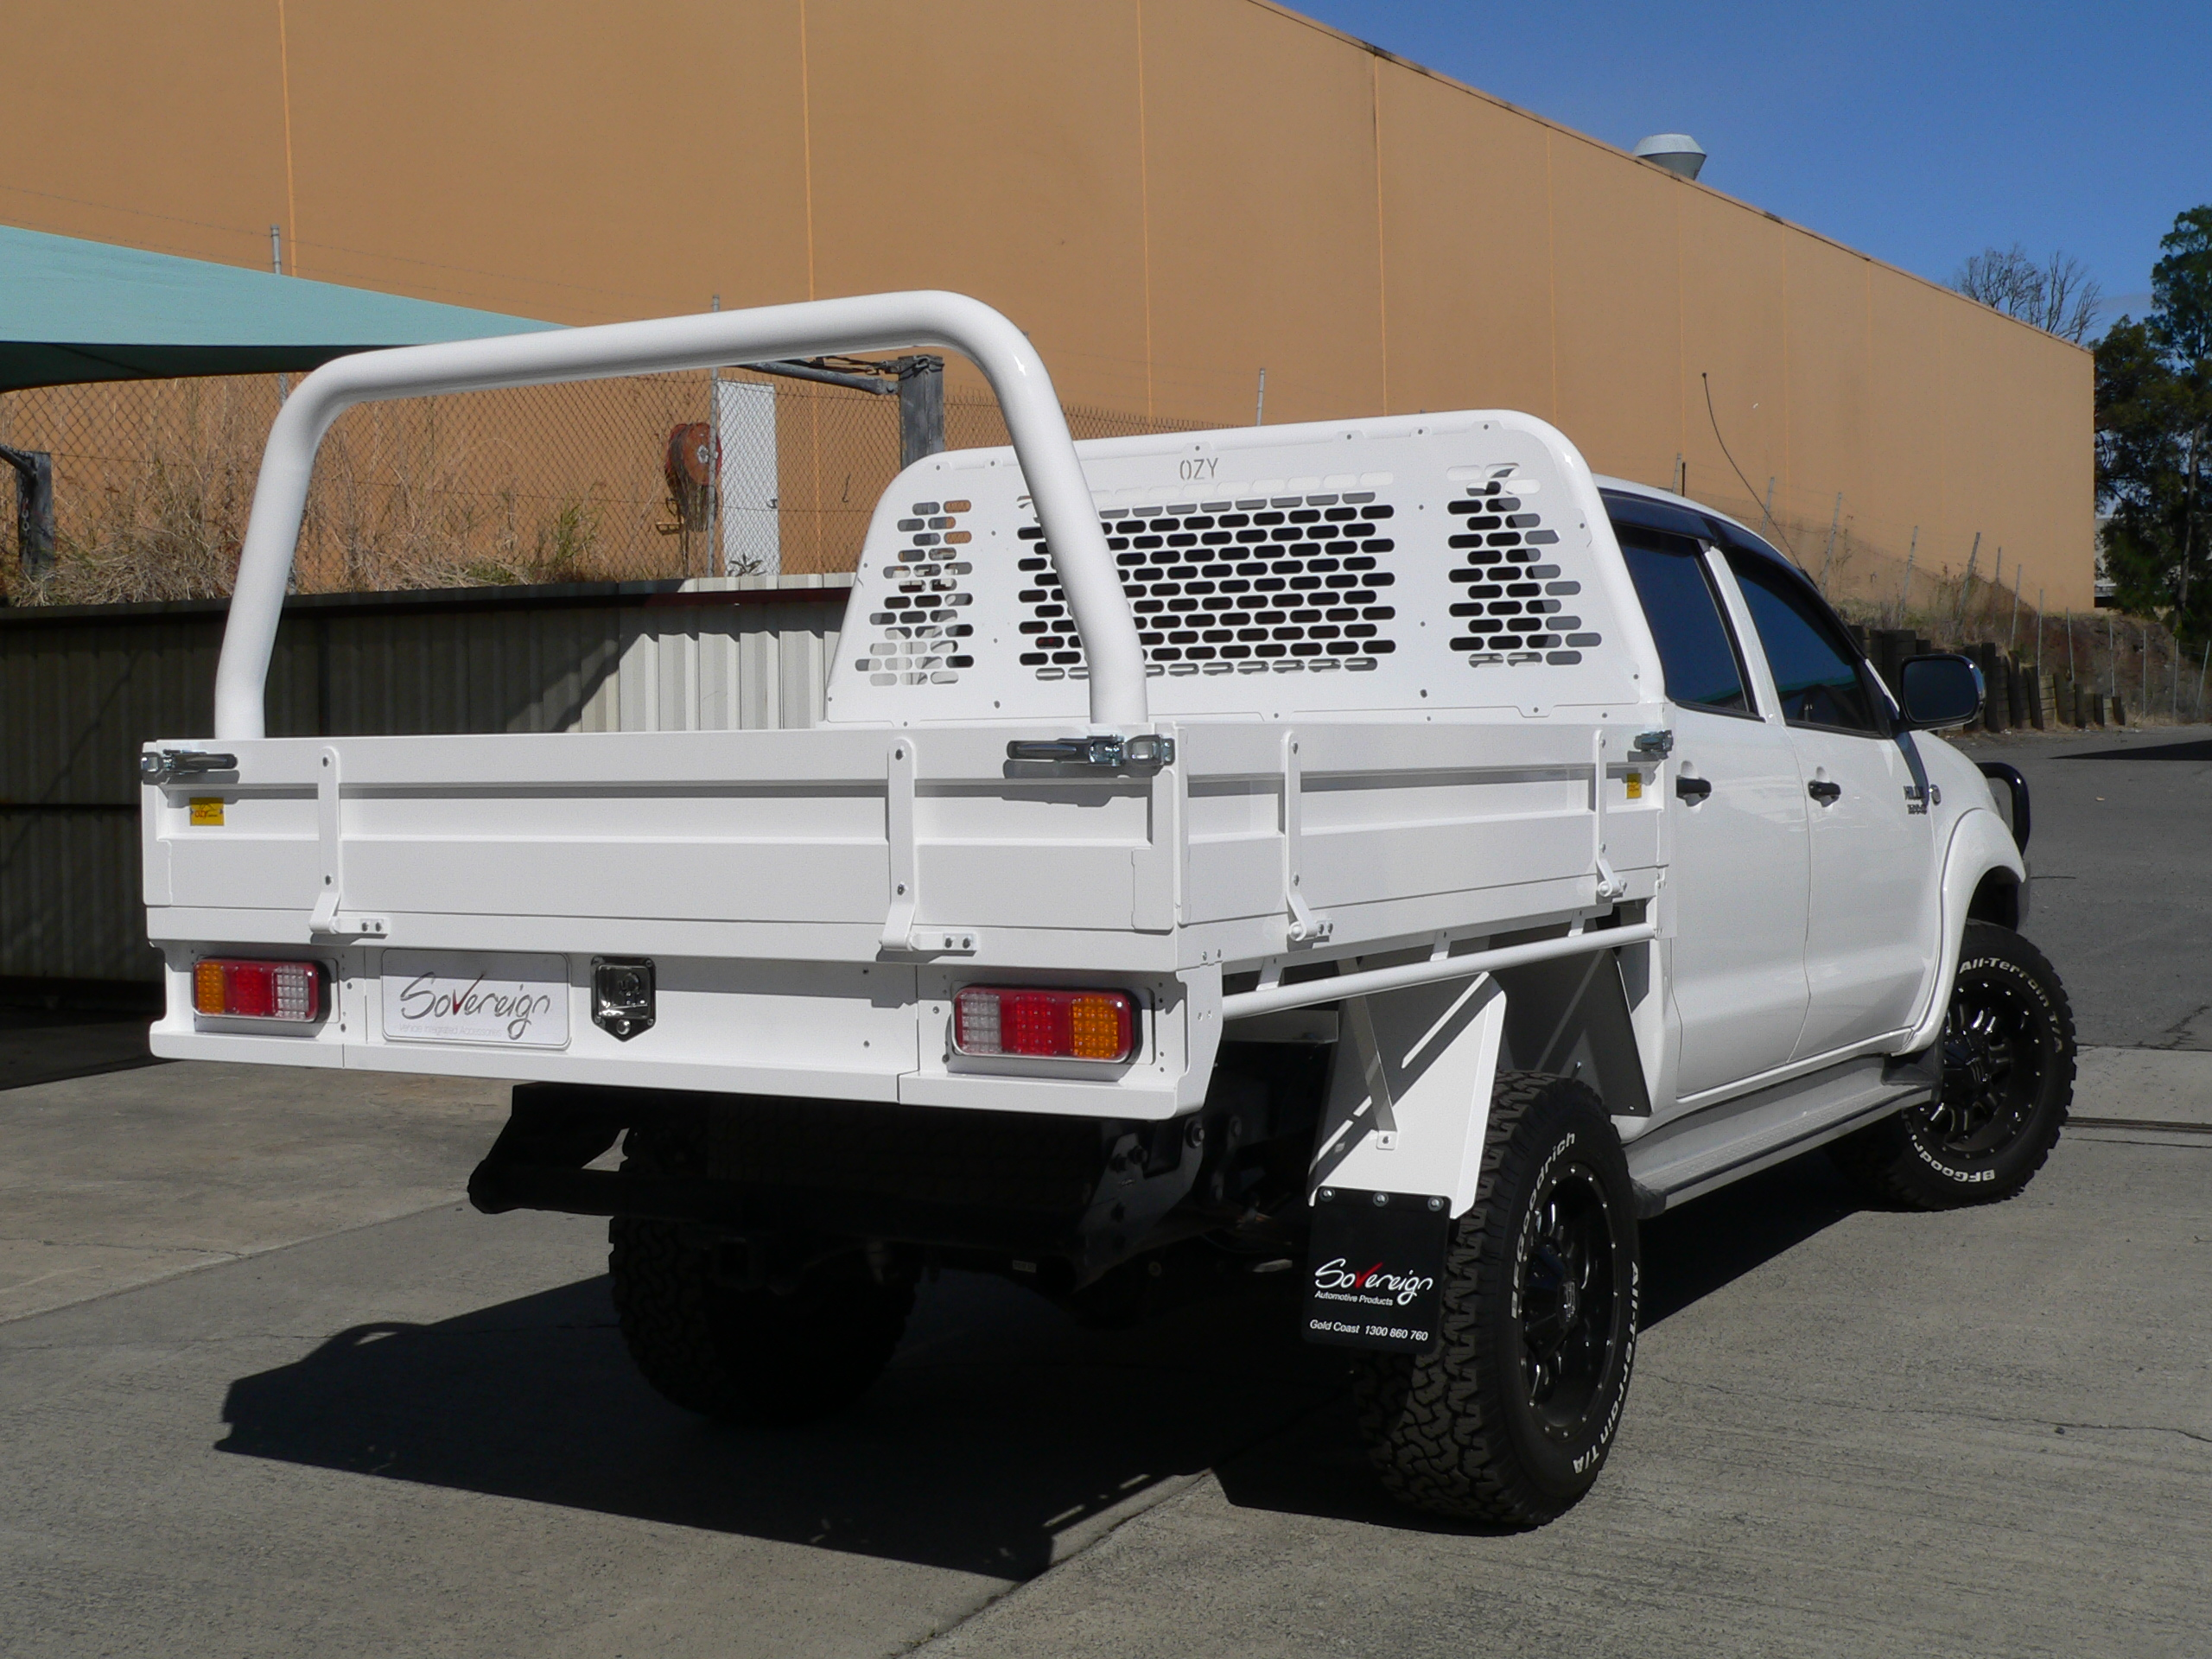 Steel Tray Deals Ute & Dual Cab Tray - Auto cars